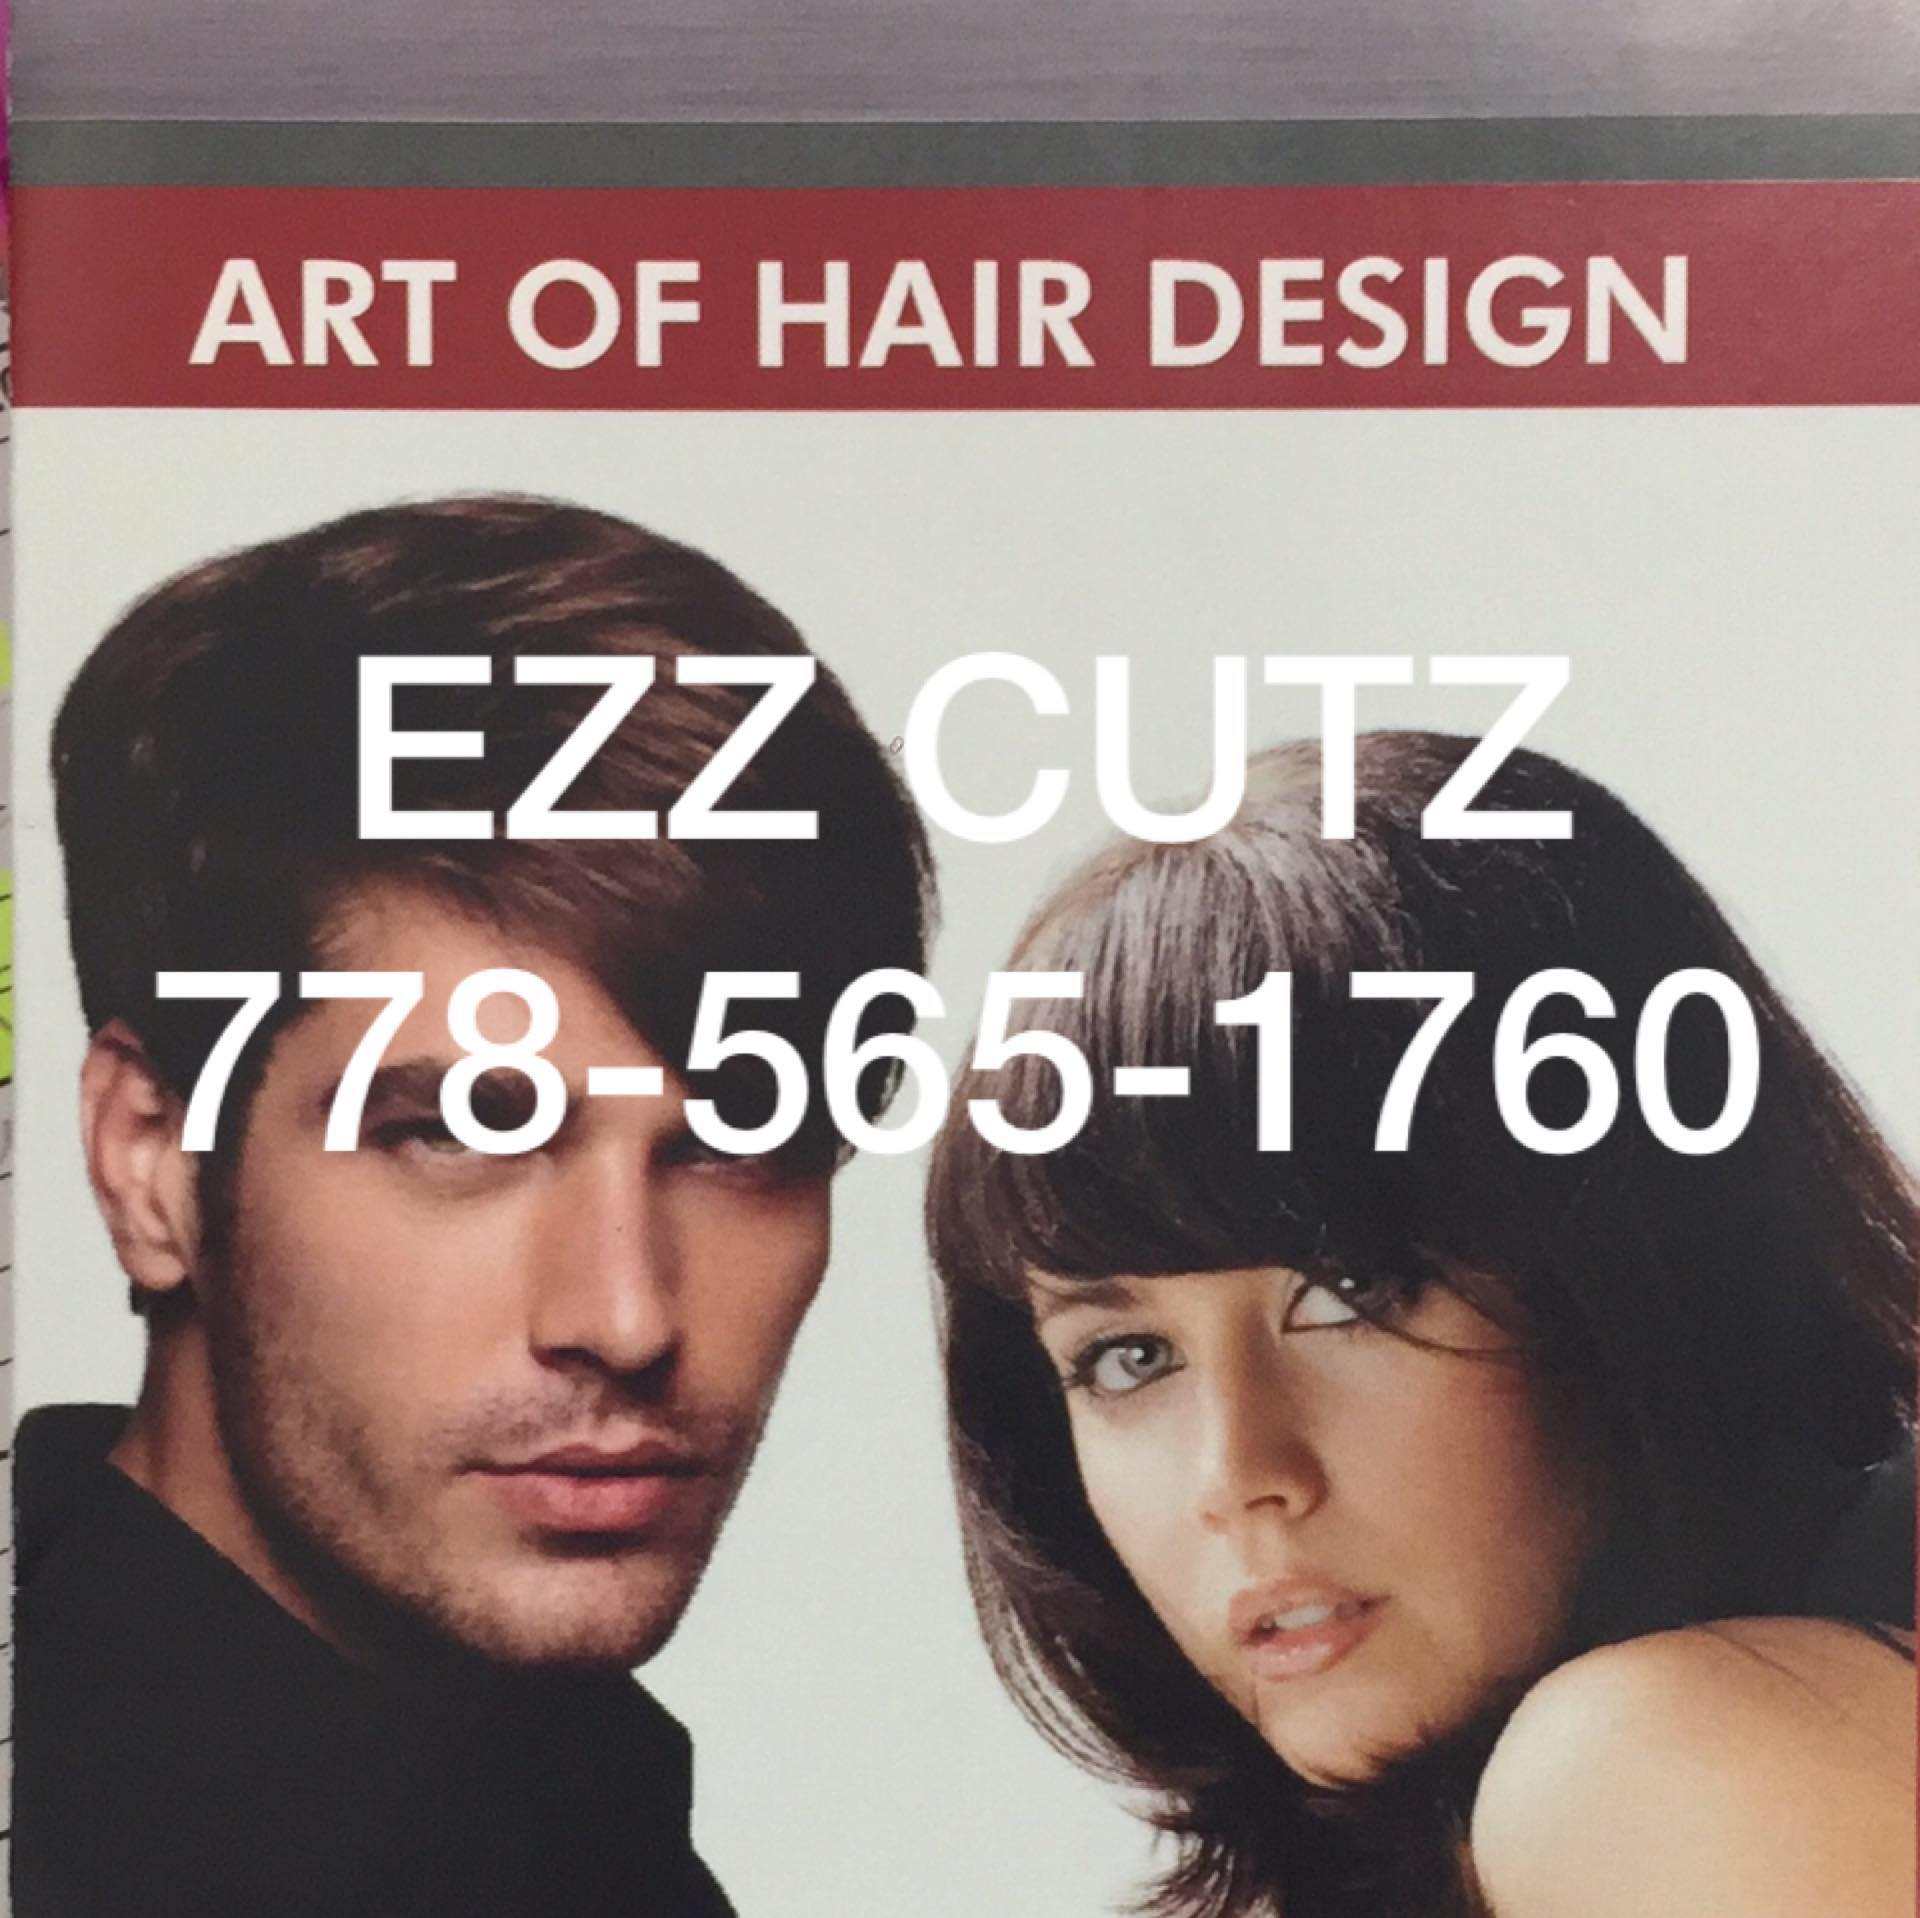 EZZ Cutz Salon